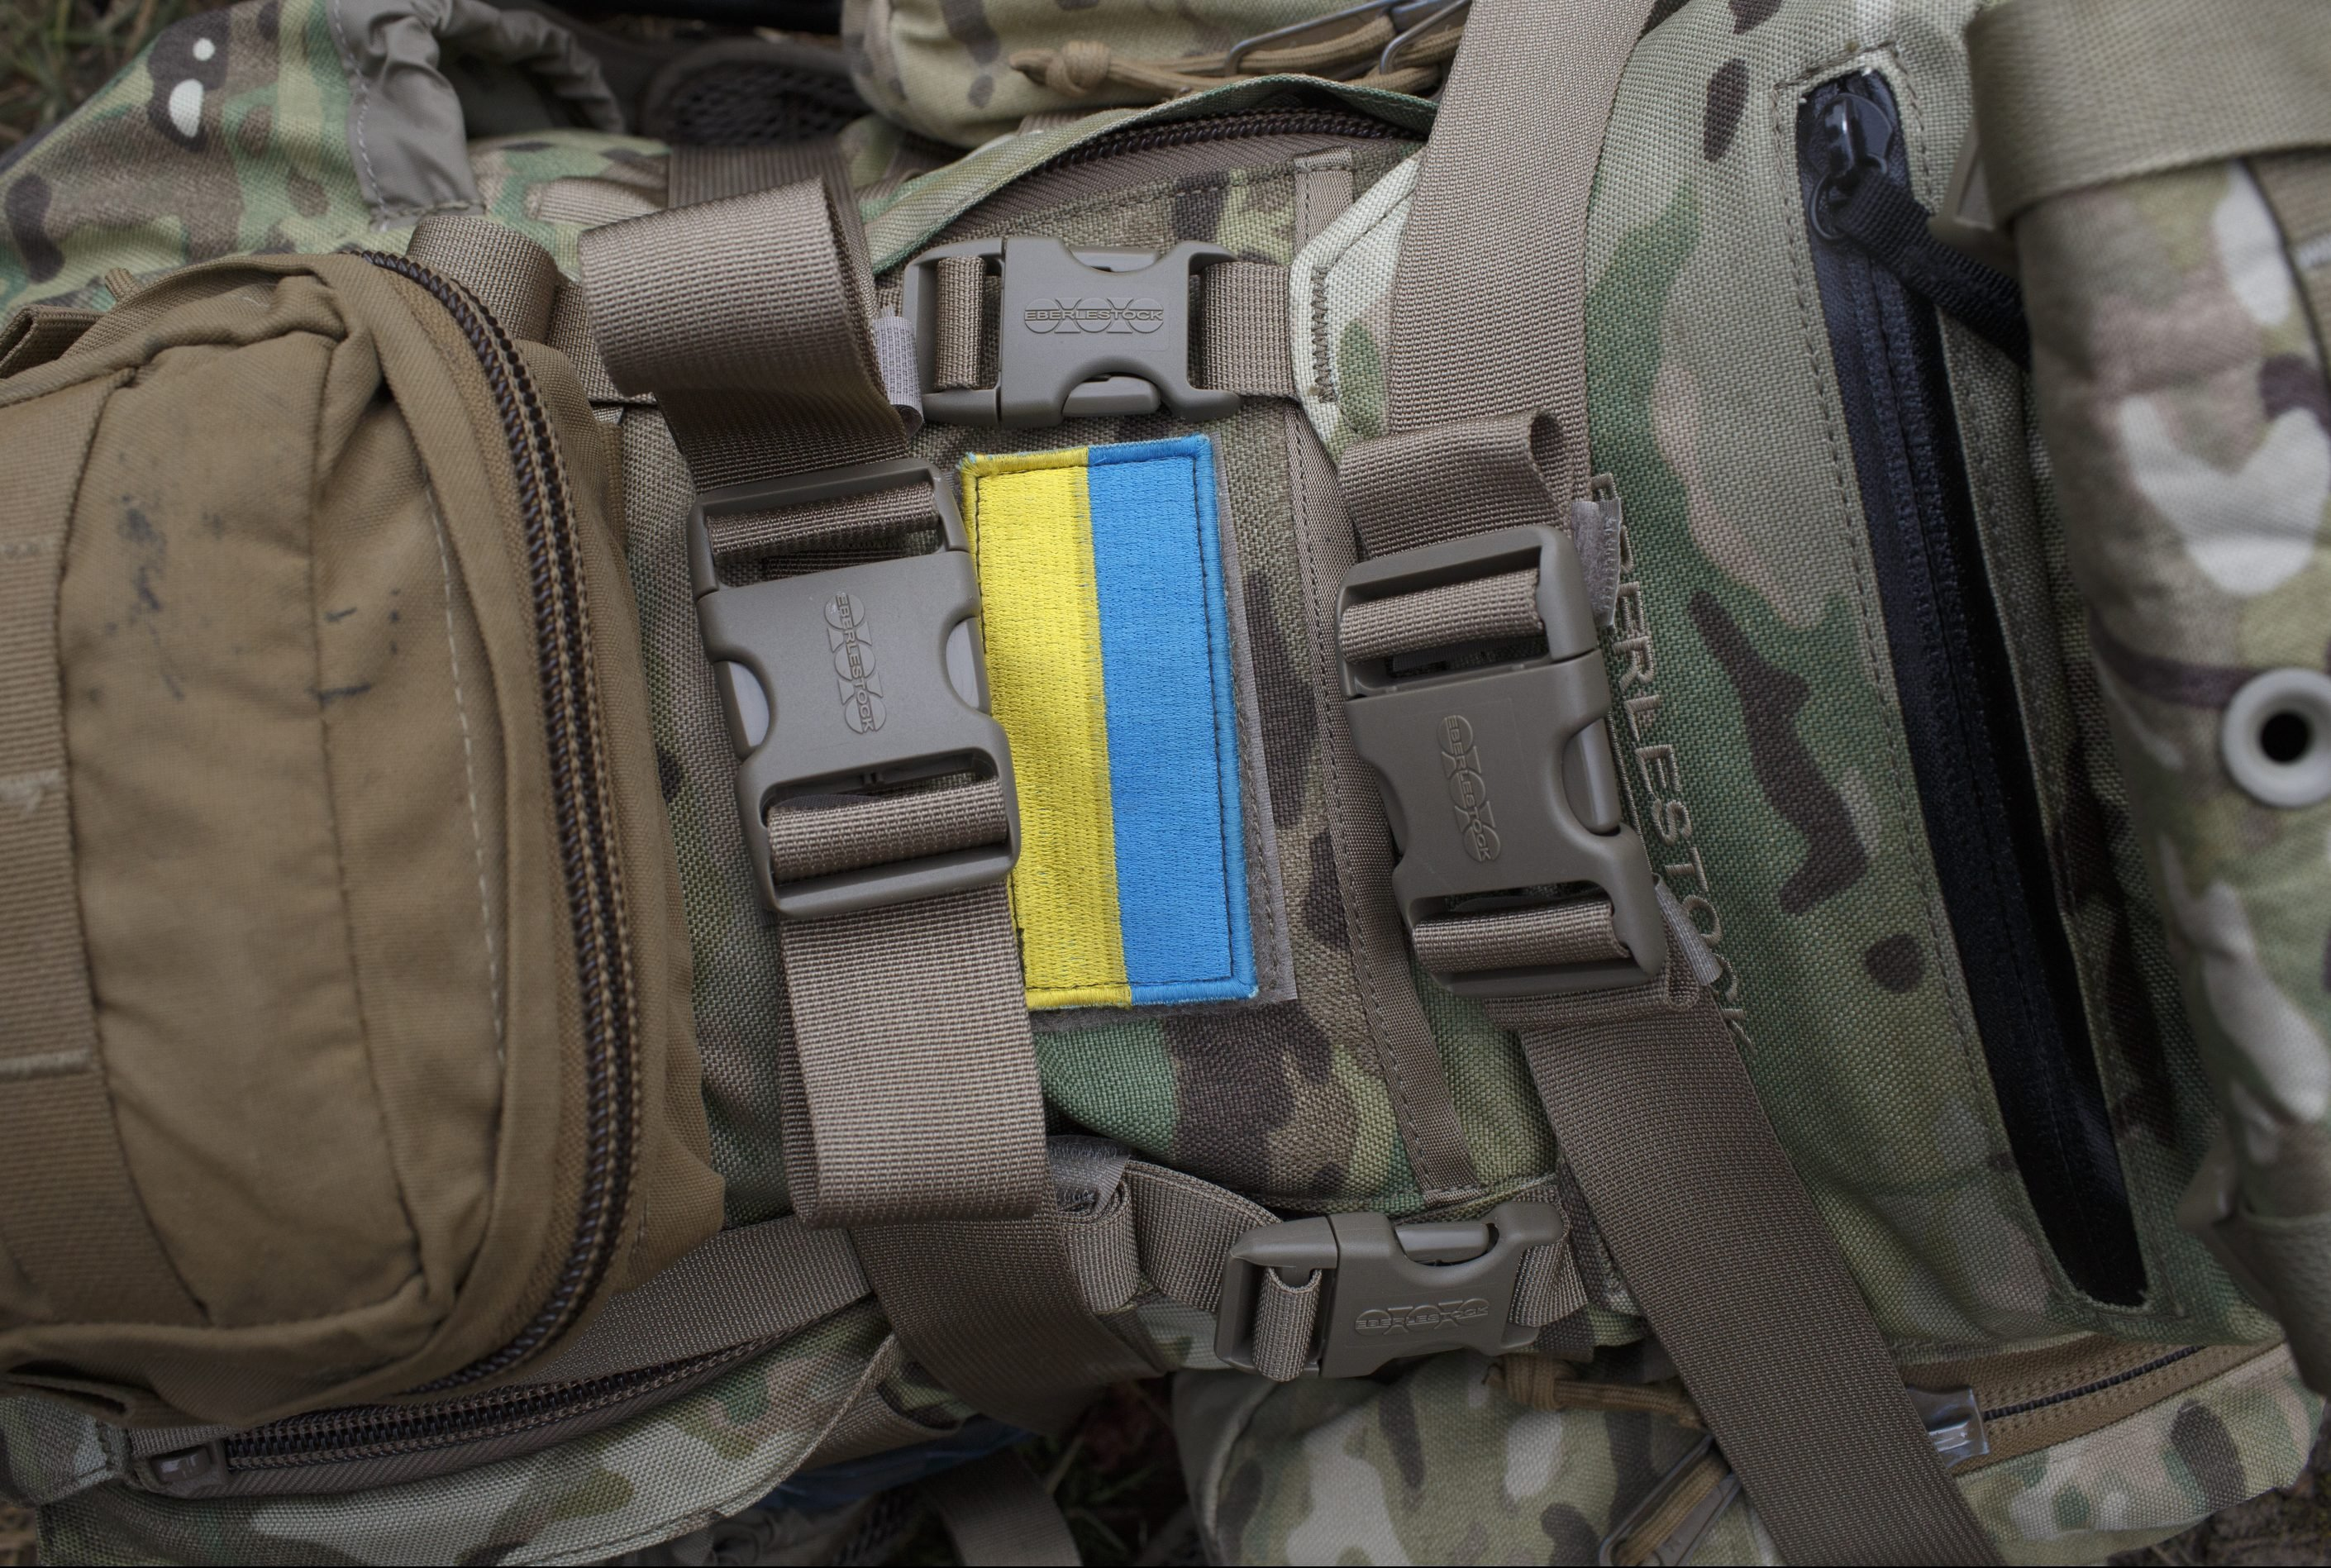 YAVORIV, UKRAINE - APRIL 21: A Ukrainian flag is seen on the backpack of an American Soldier during Operation Fearless Guardian on April 21, 2015 at the International Peacekeeping and Security Center near Yavoriv, Ukraine. The American soldier said he received the flag as a gift from one of the Ukrainian soldiers he is training. Operation Fearless Guardian is a six-month training exercise involving about 300 members of the American 173rd Airborne and about 900 Ukrainian National Guard troops. (Photo by Pete Kiehart/Getty Images)